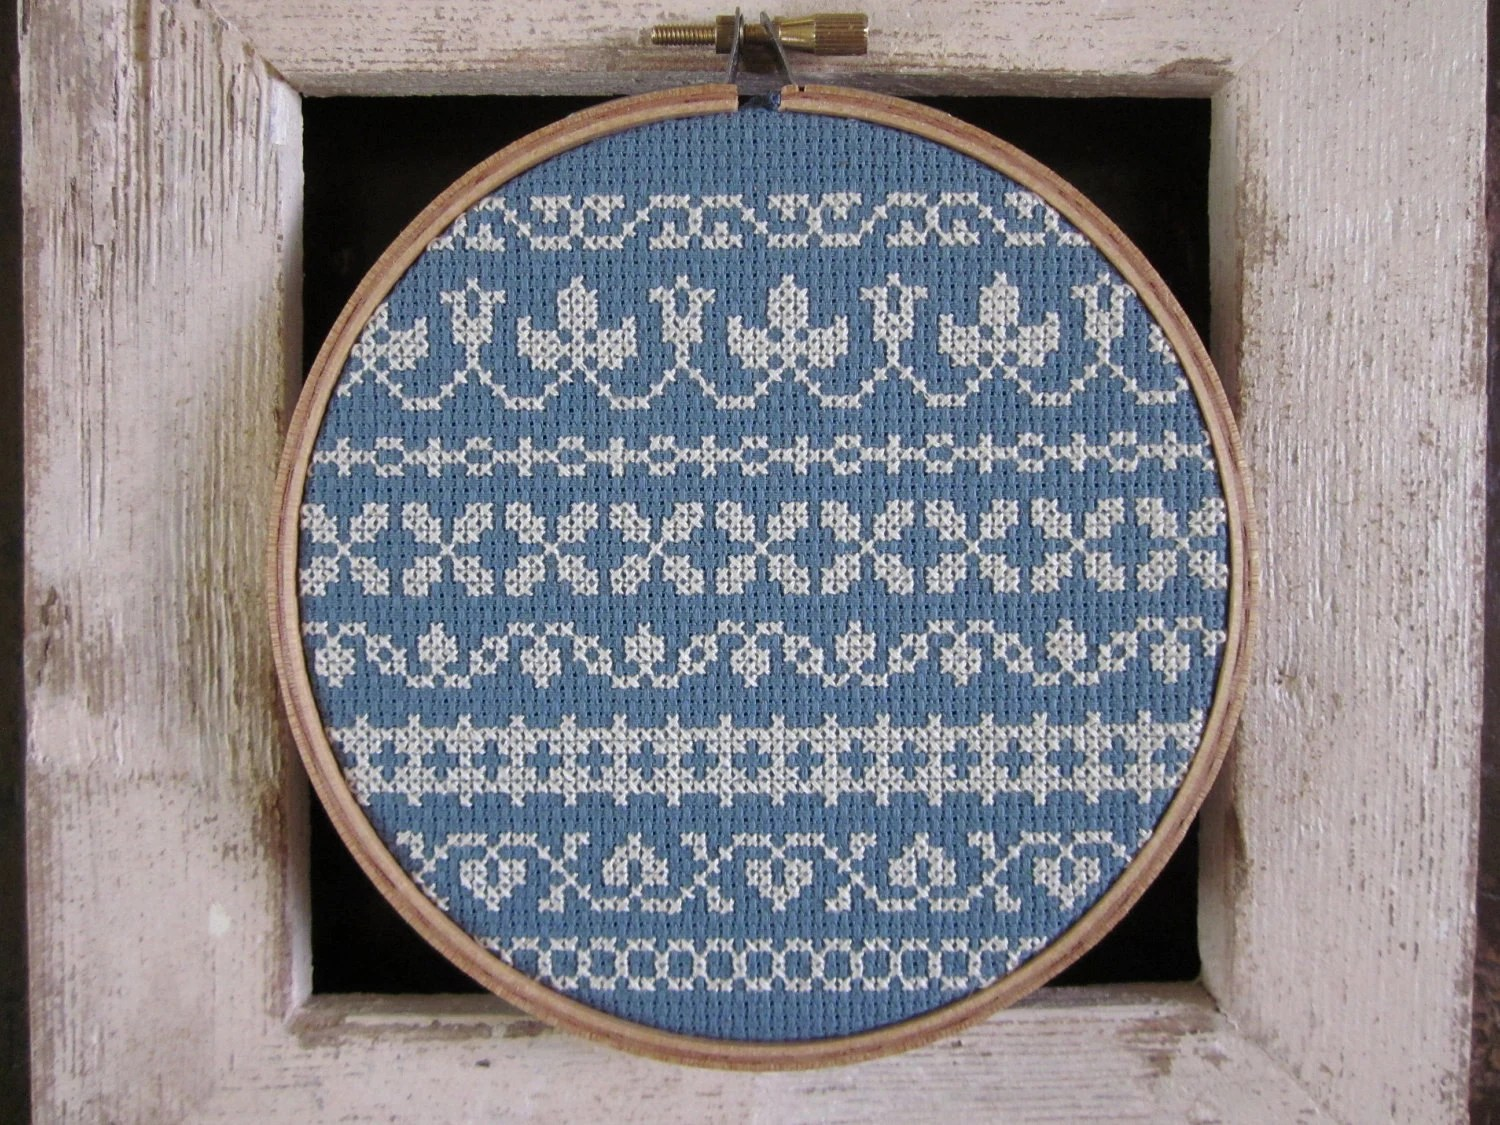 borderlines --- diy cross stitch kit border sampler, materials and pattern, to be framed in included 5.25 inch wooden embroidery hoop - ChezSucreChez